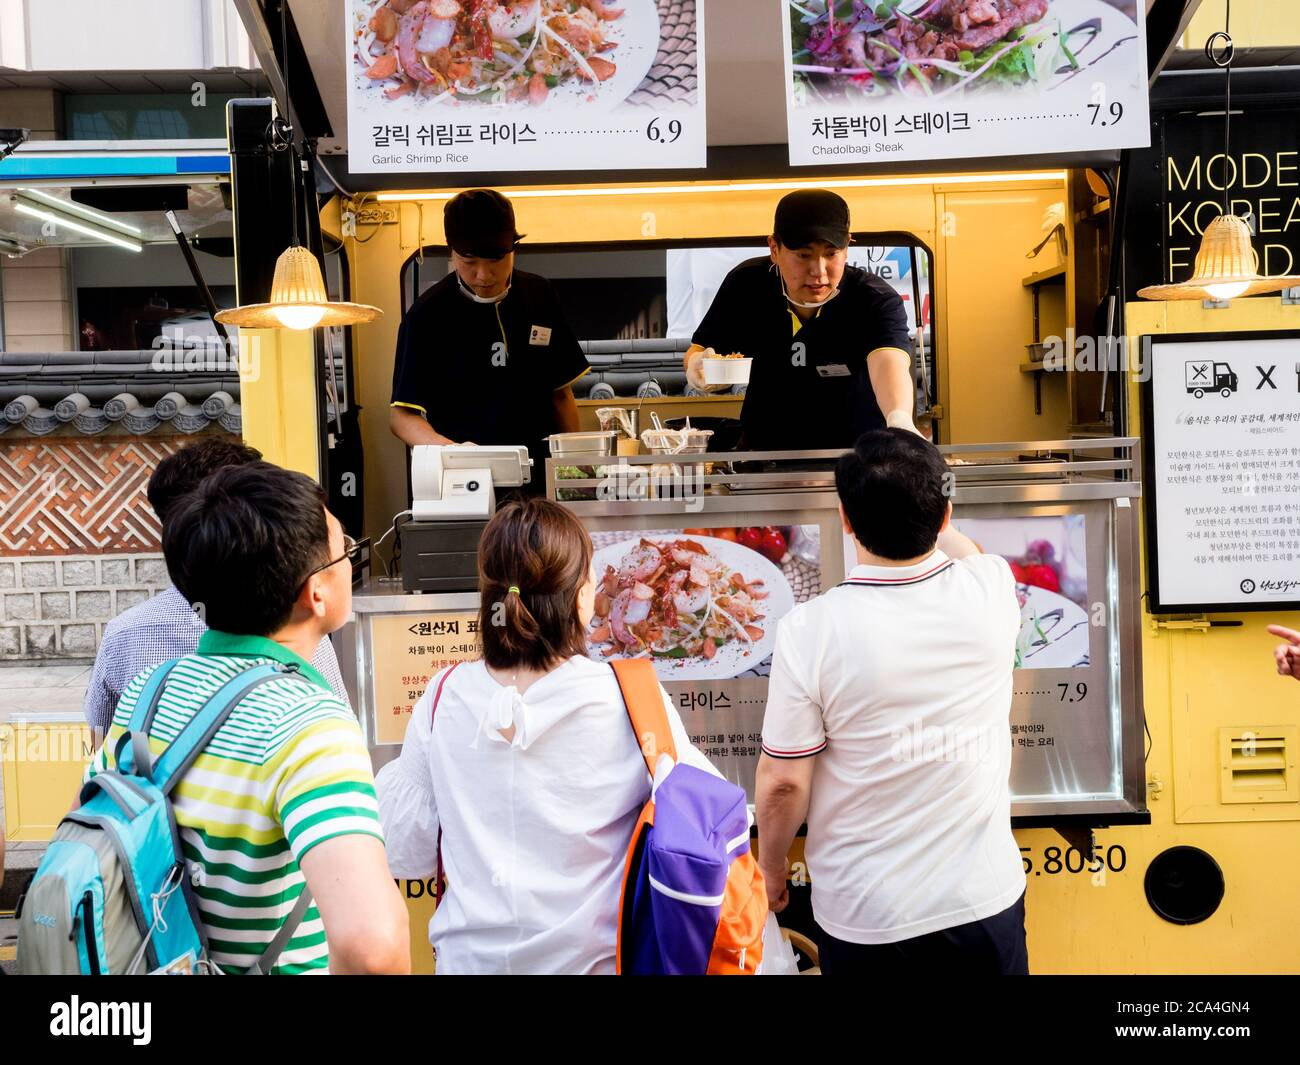 Seoul, South Korea - June 17, 2017: People queuing up at the fast food kiosk at the street near Cheonggyecheon stream in Seoul. Stock Photo